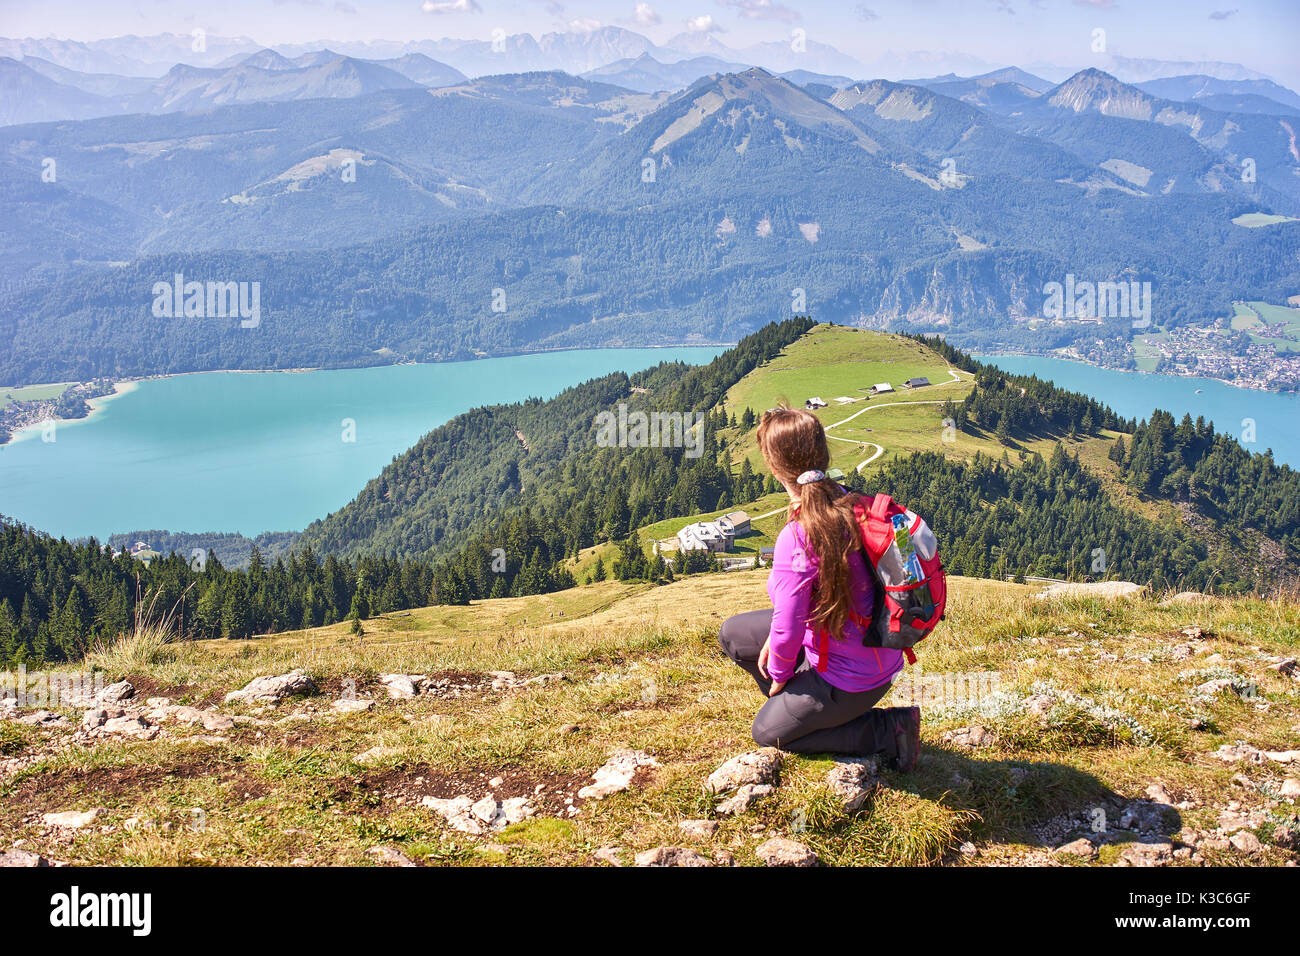 Woman with backpack in mountains - Stock Image